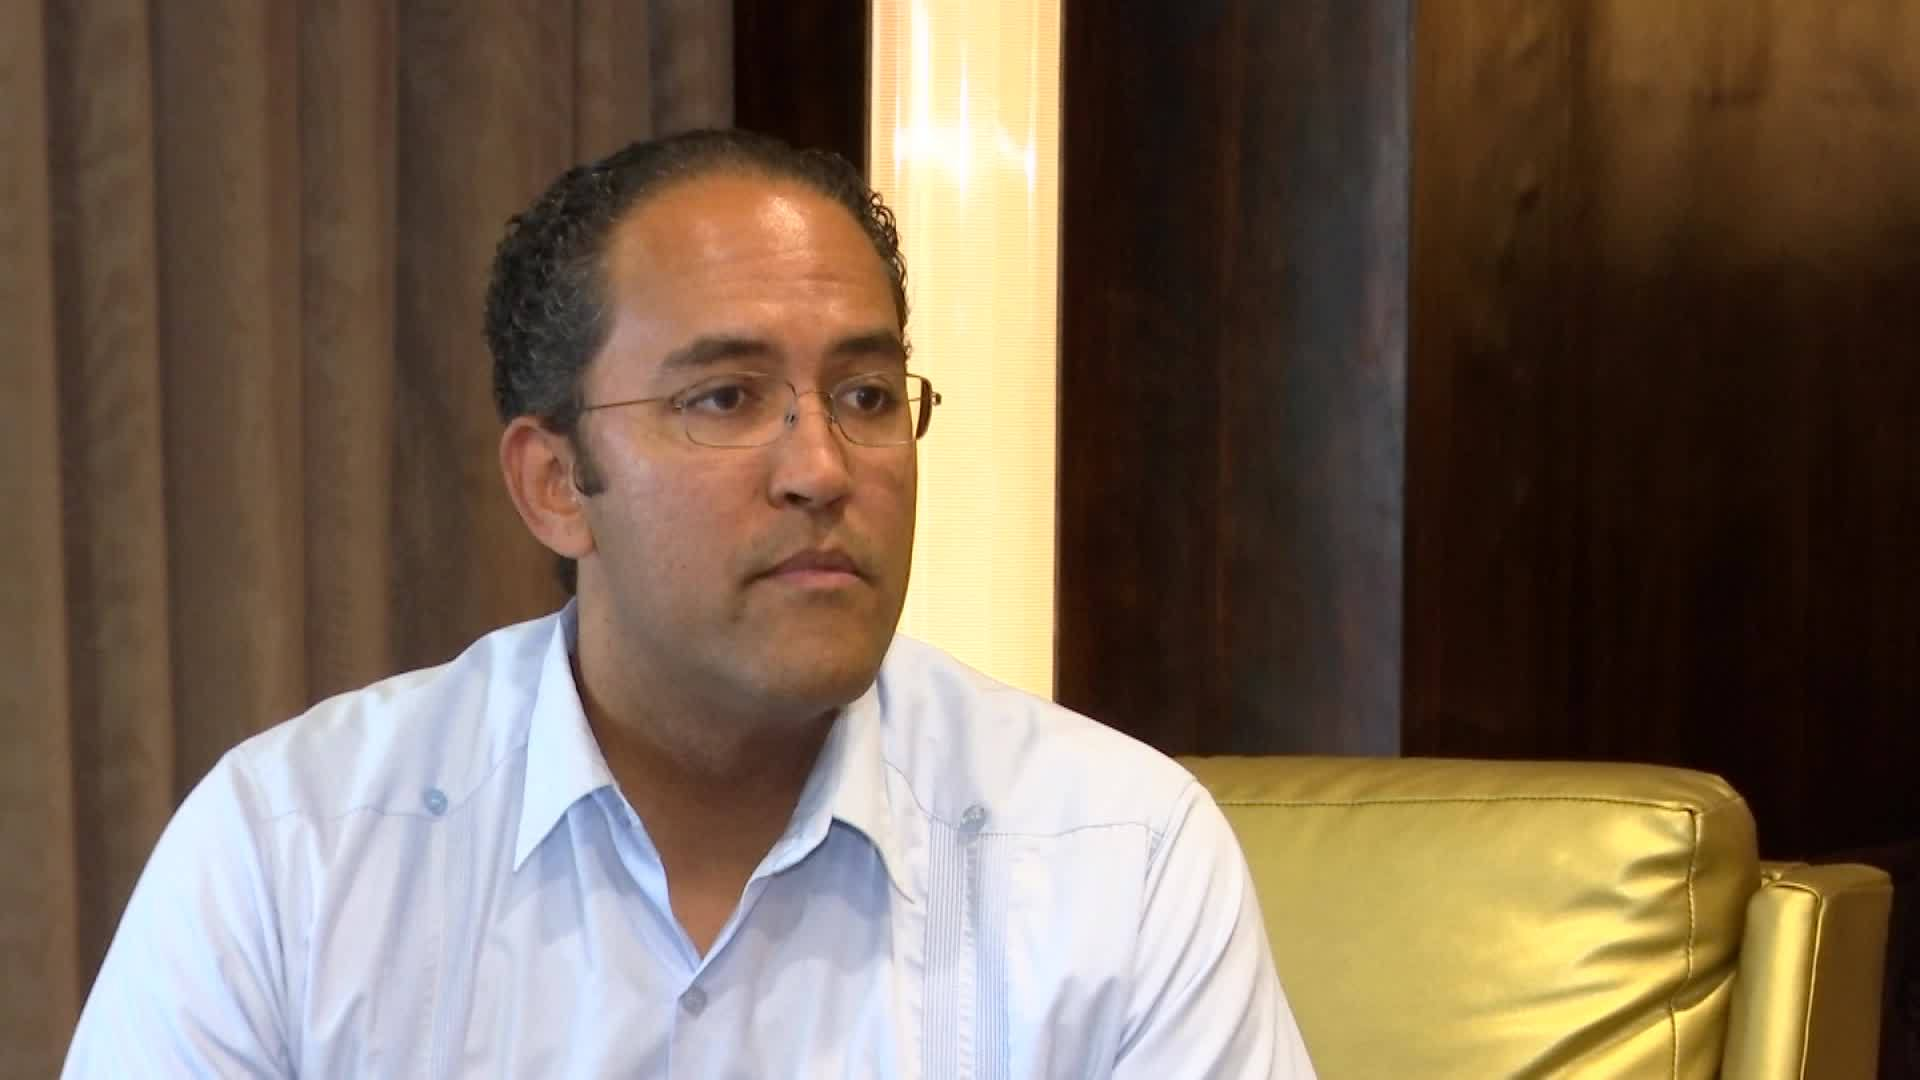 US_Rep__Will_Hurd_talks_about_immigratio_0_20180829220928